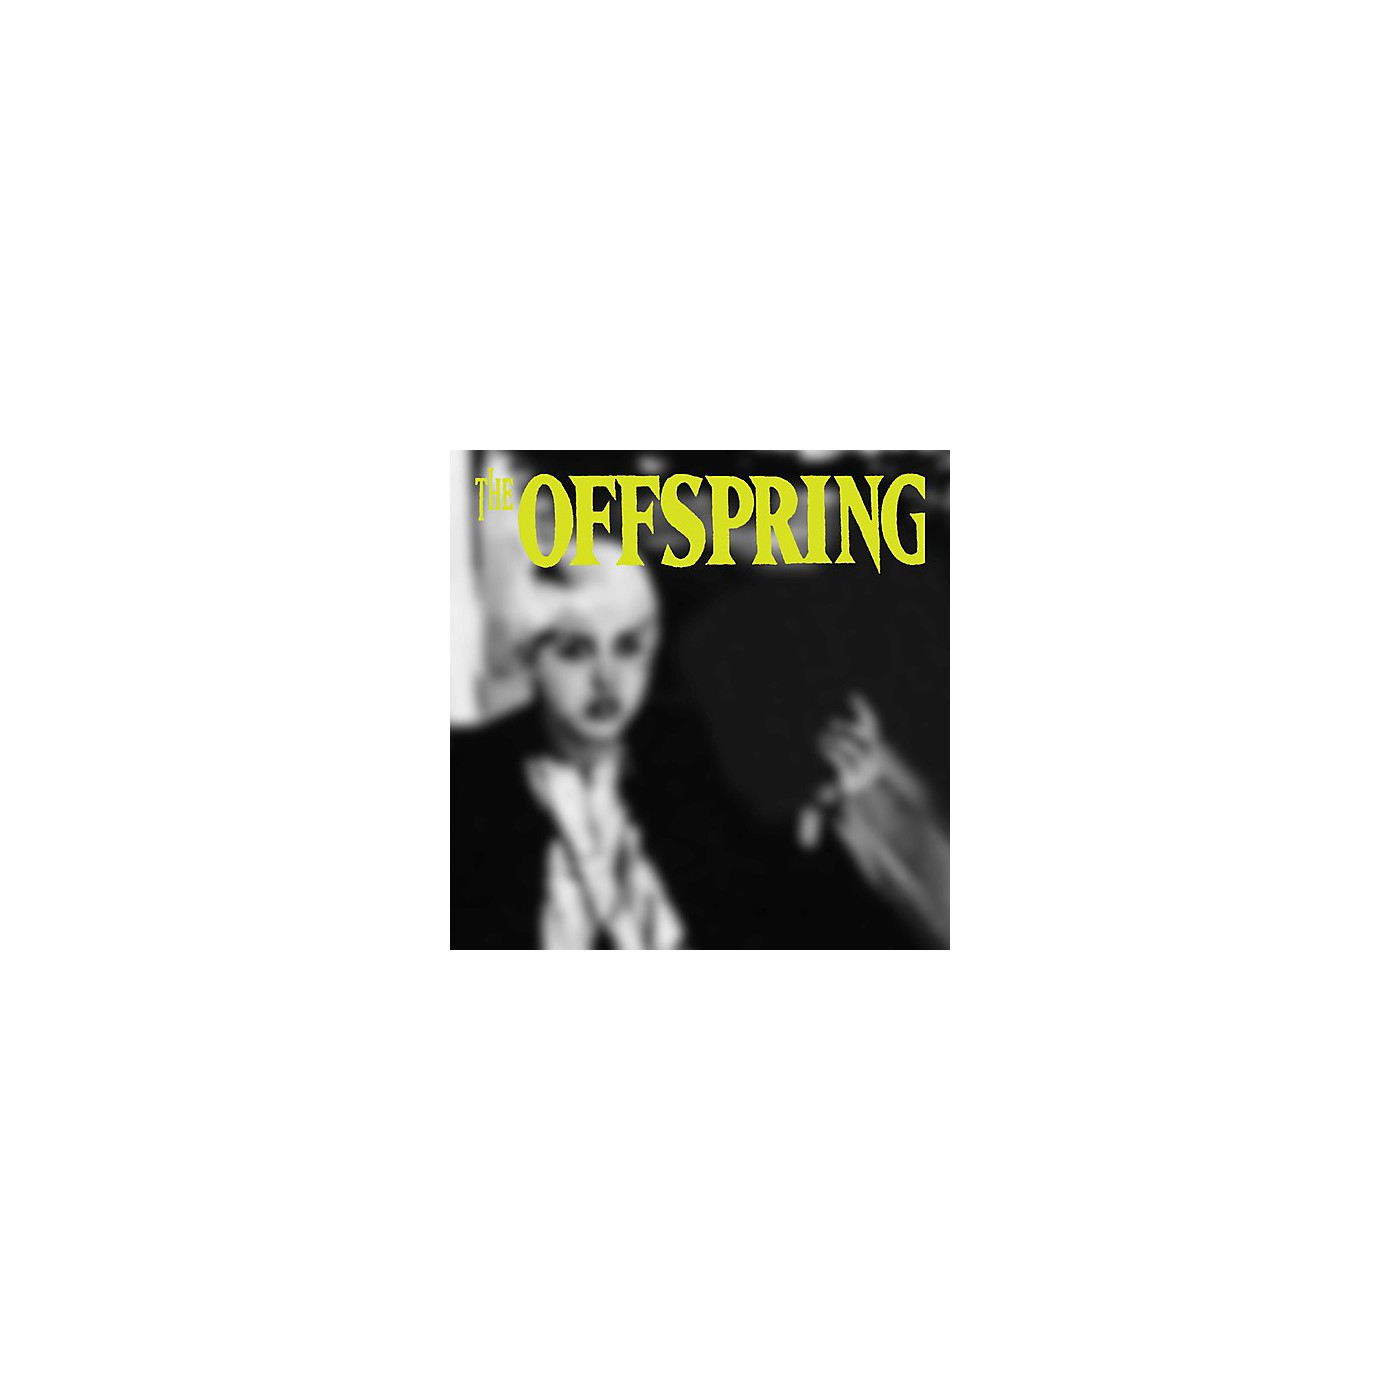 Alliance The Offspring - The Offspring thumbnail